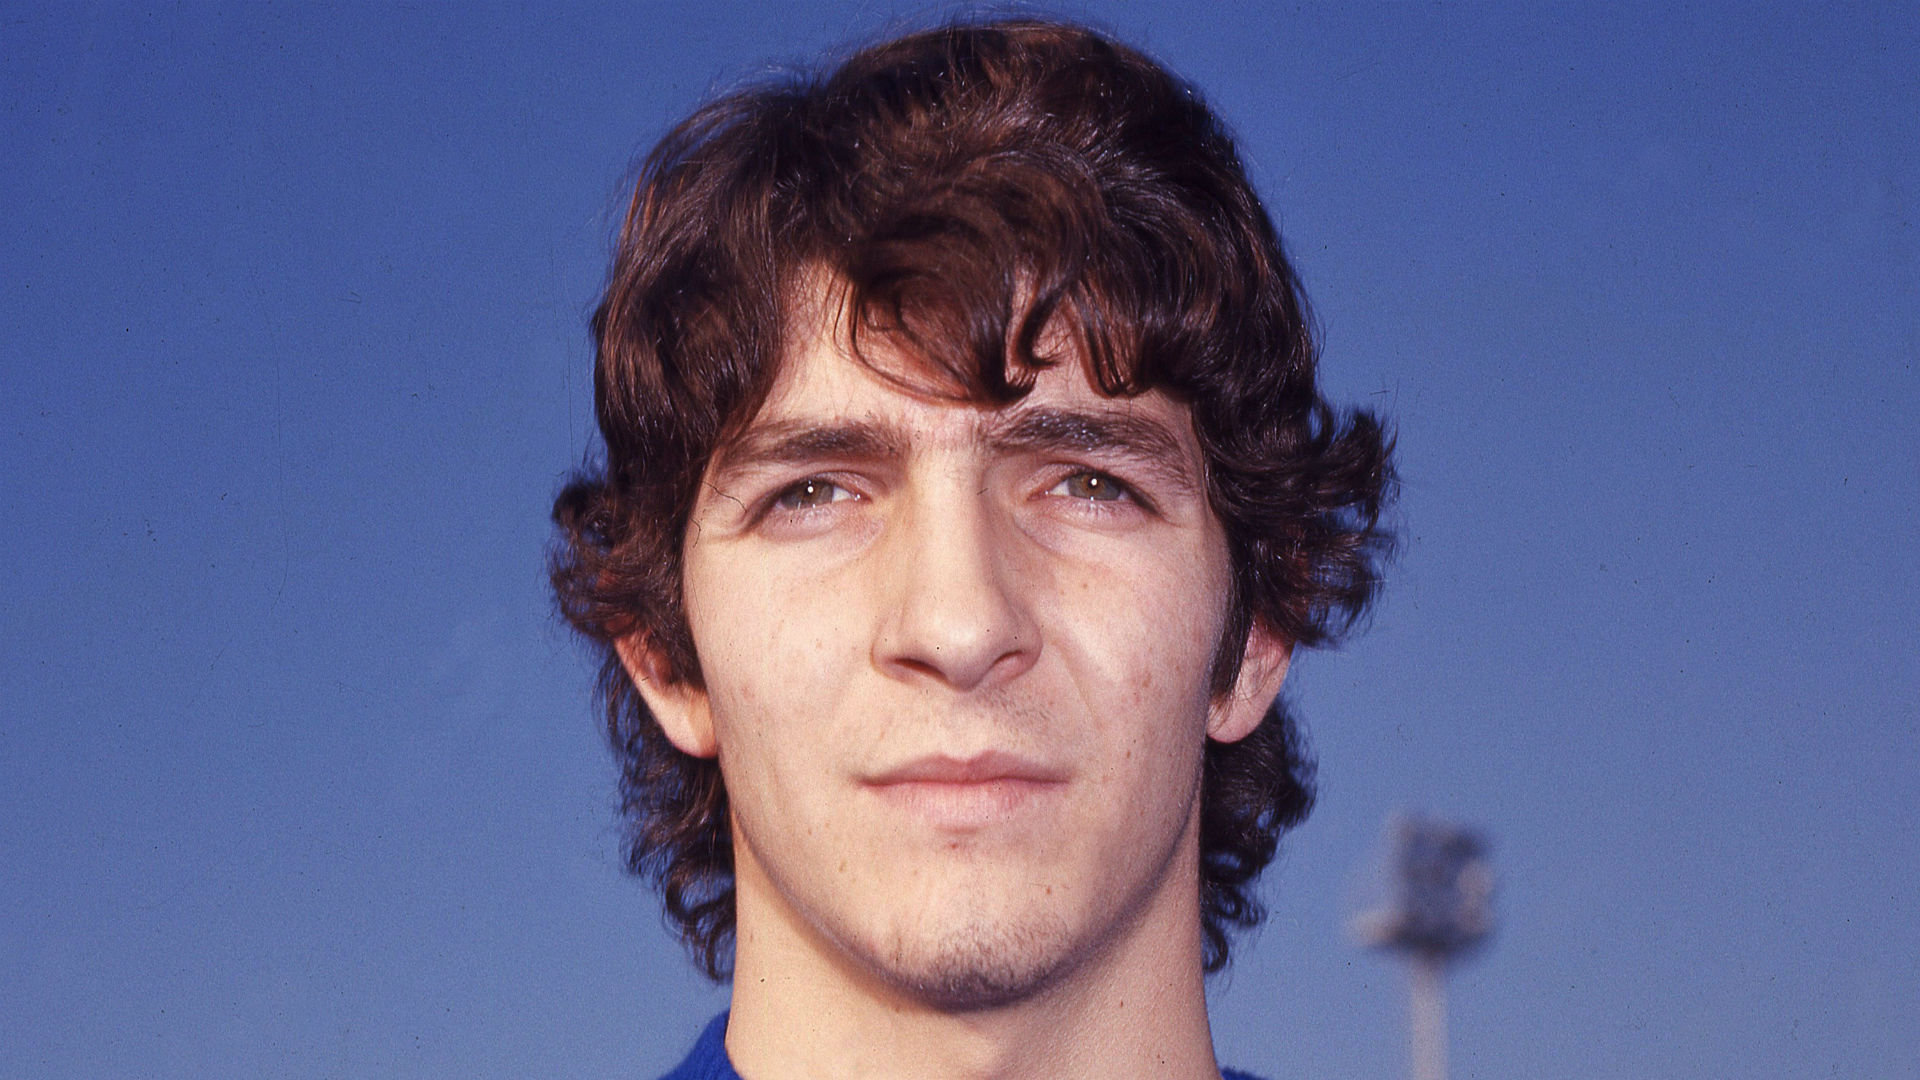 Paolo Rossi dies: Italian football loses 'a friend and an icon' as Pirlo salutes 'our hero'